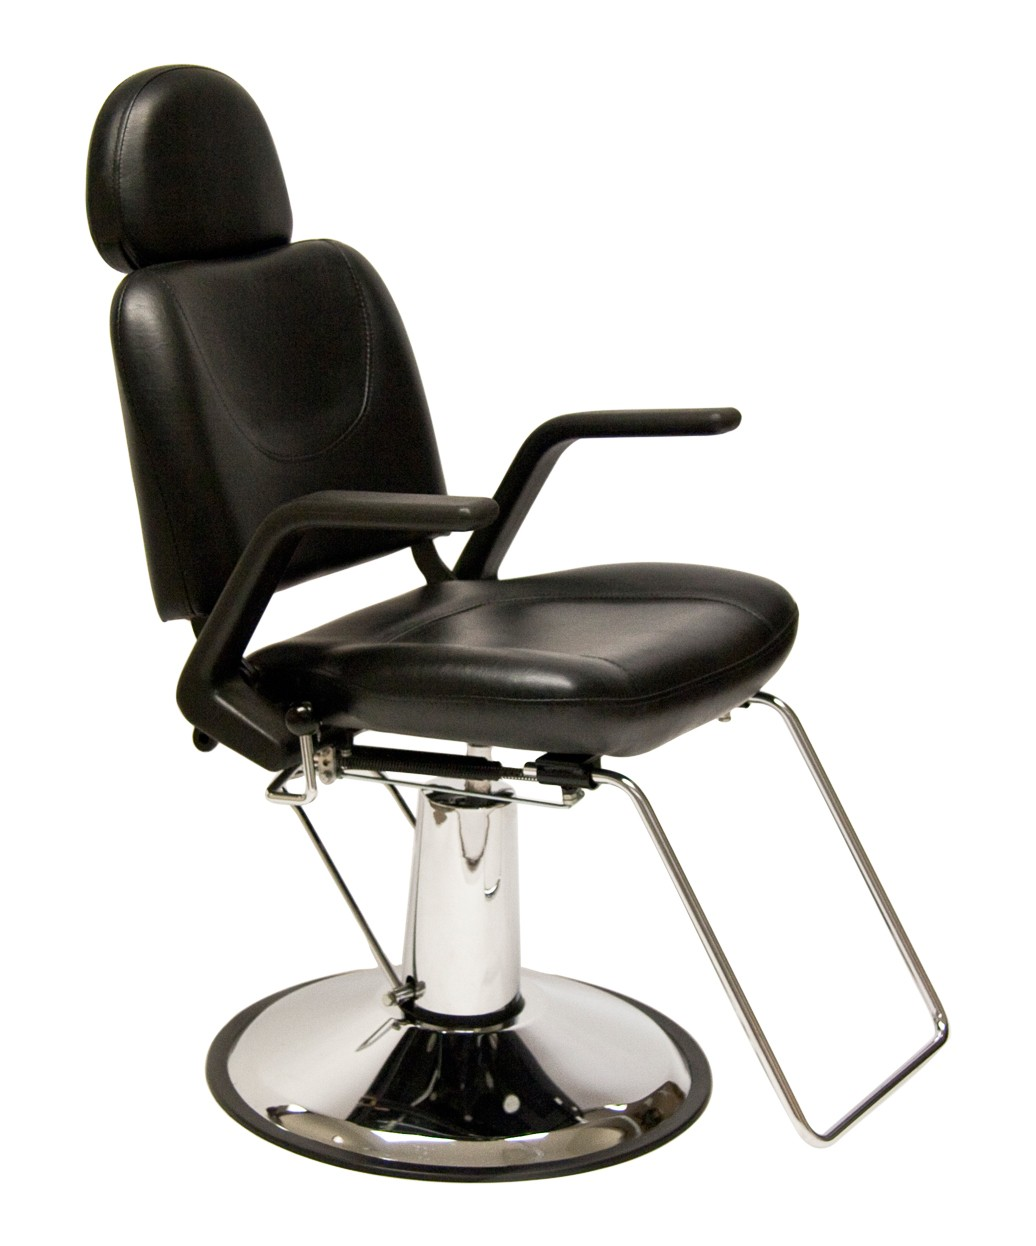 Facial Chairs Sue All Purpose Hydraulic Salon Chair With Headrest